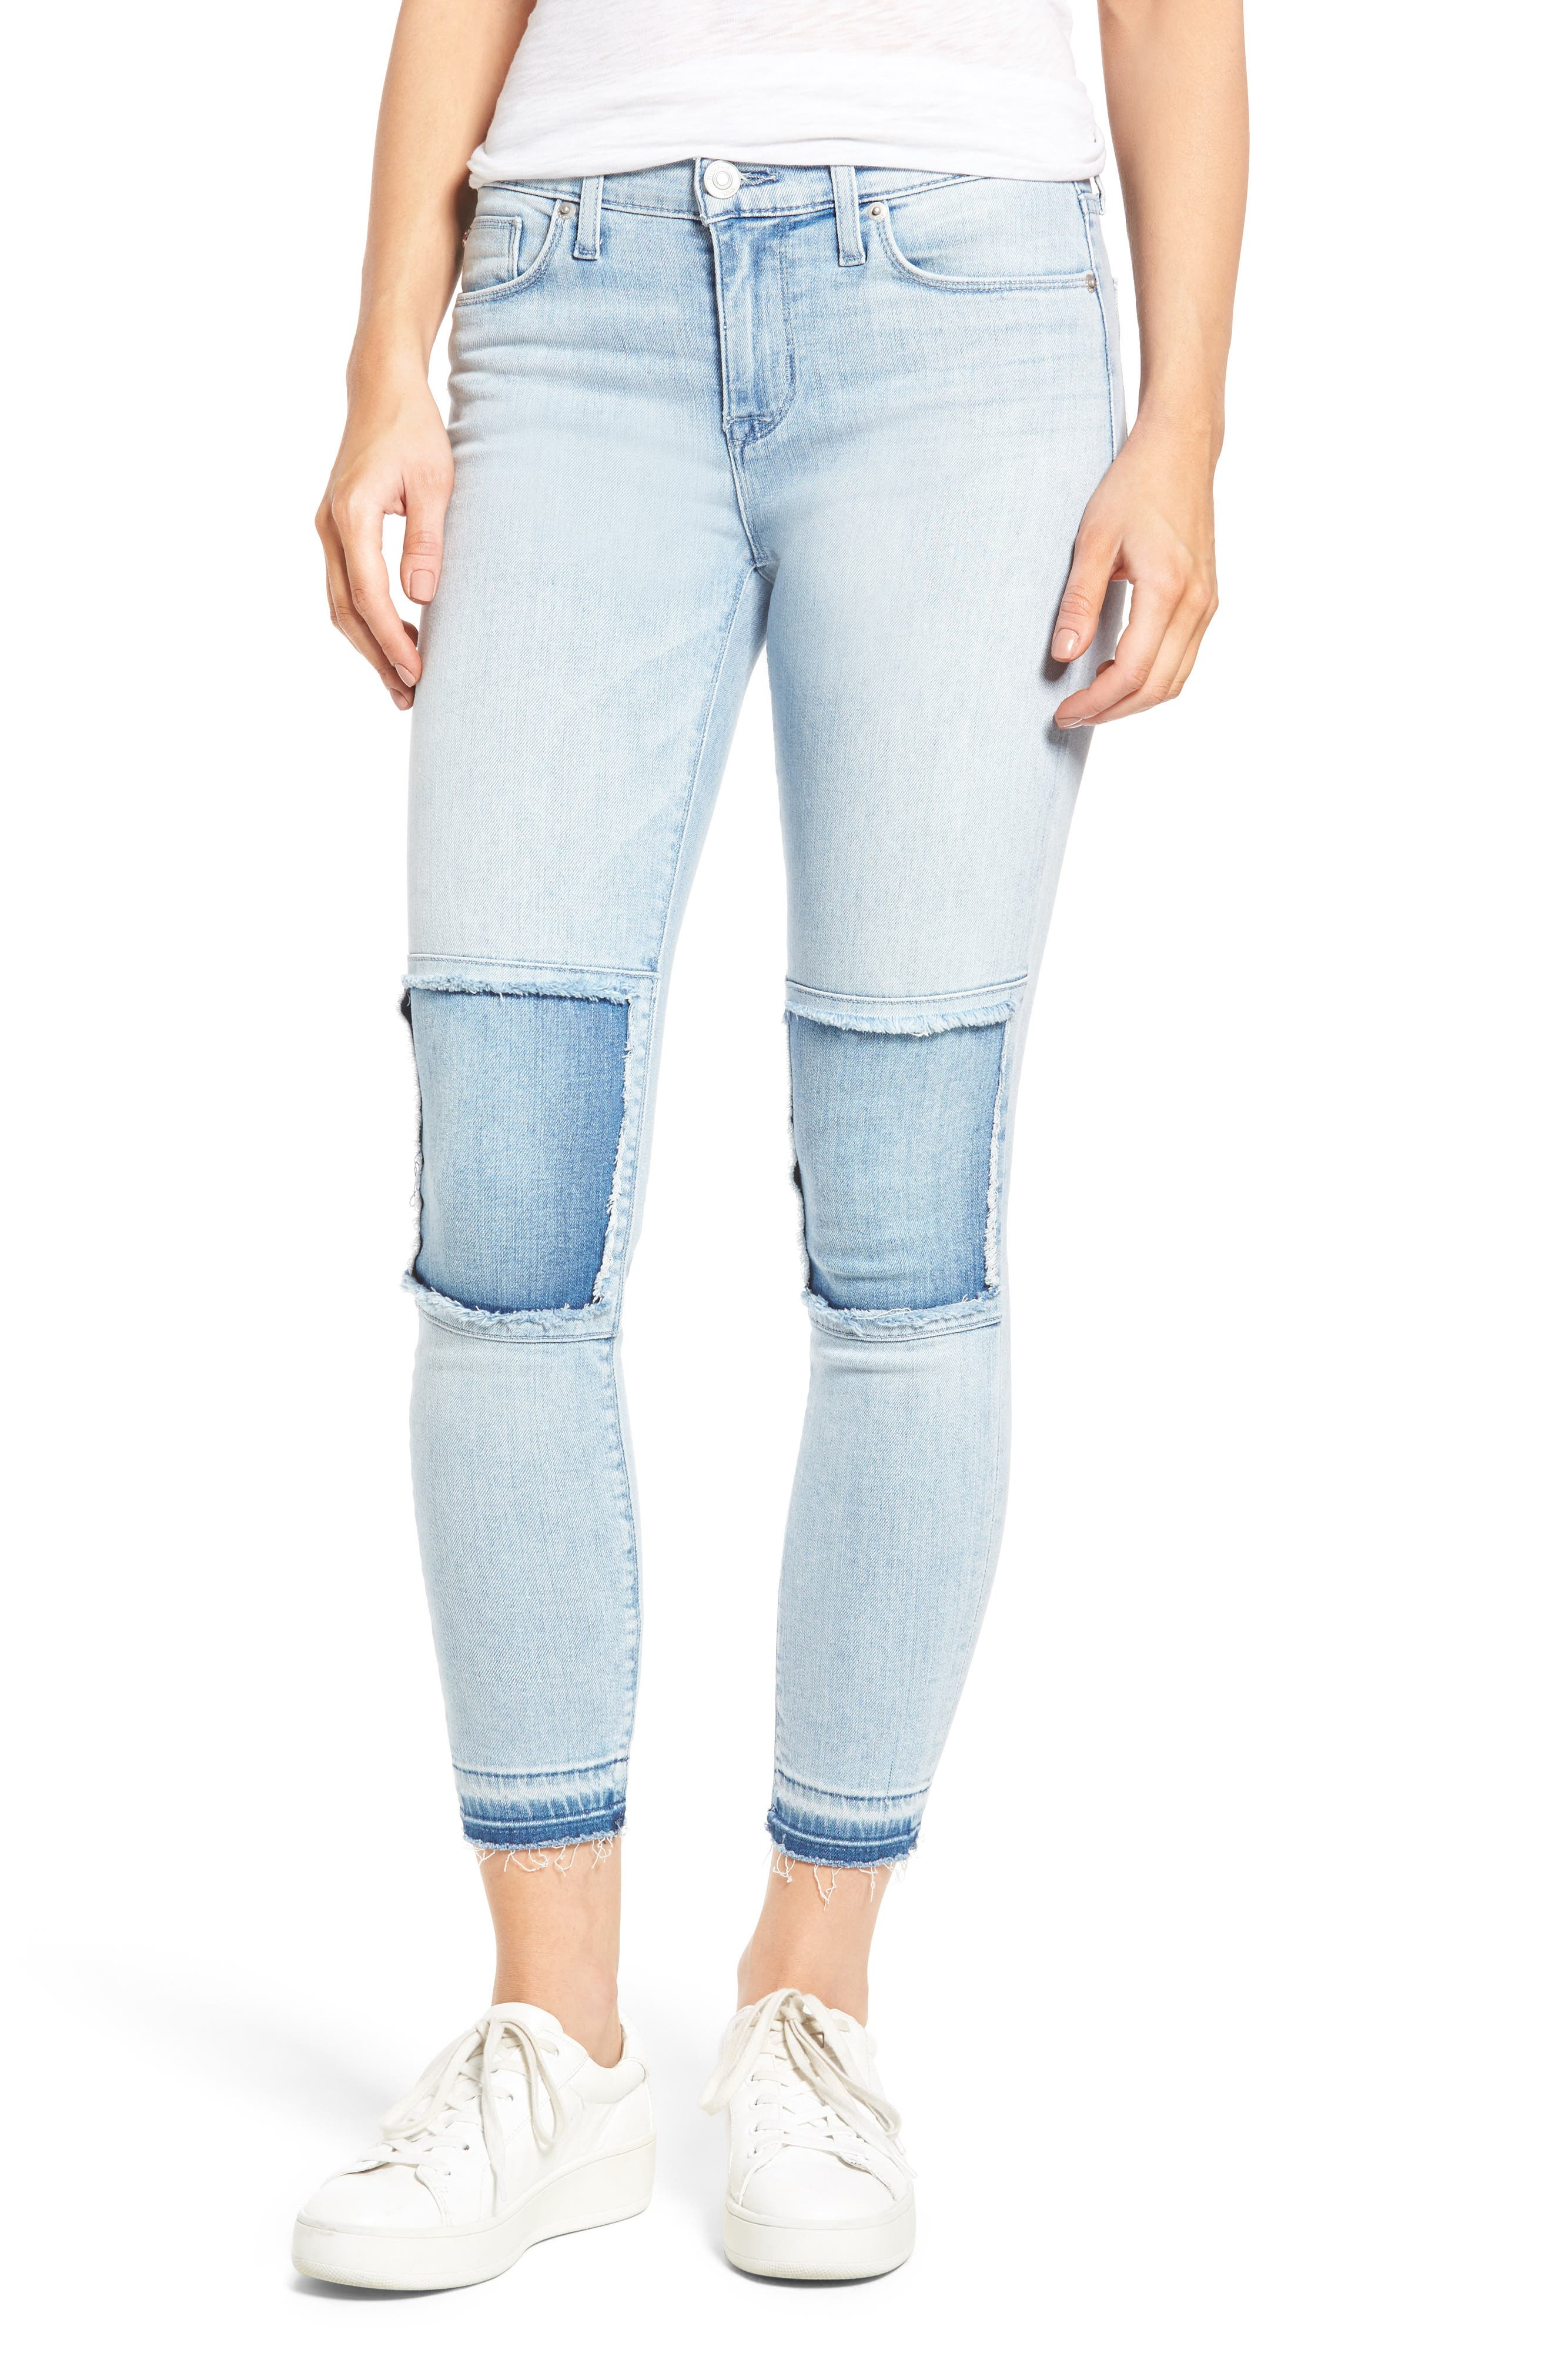 Szzi Mid Rise Patched Skinny Jeans,                             Main thumbnail 1, color,                             455